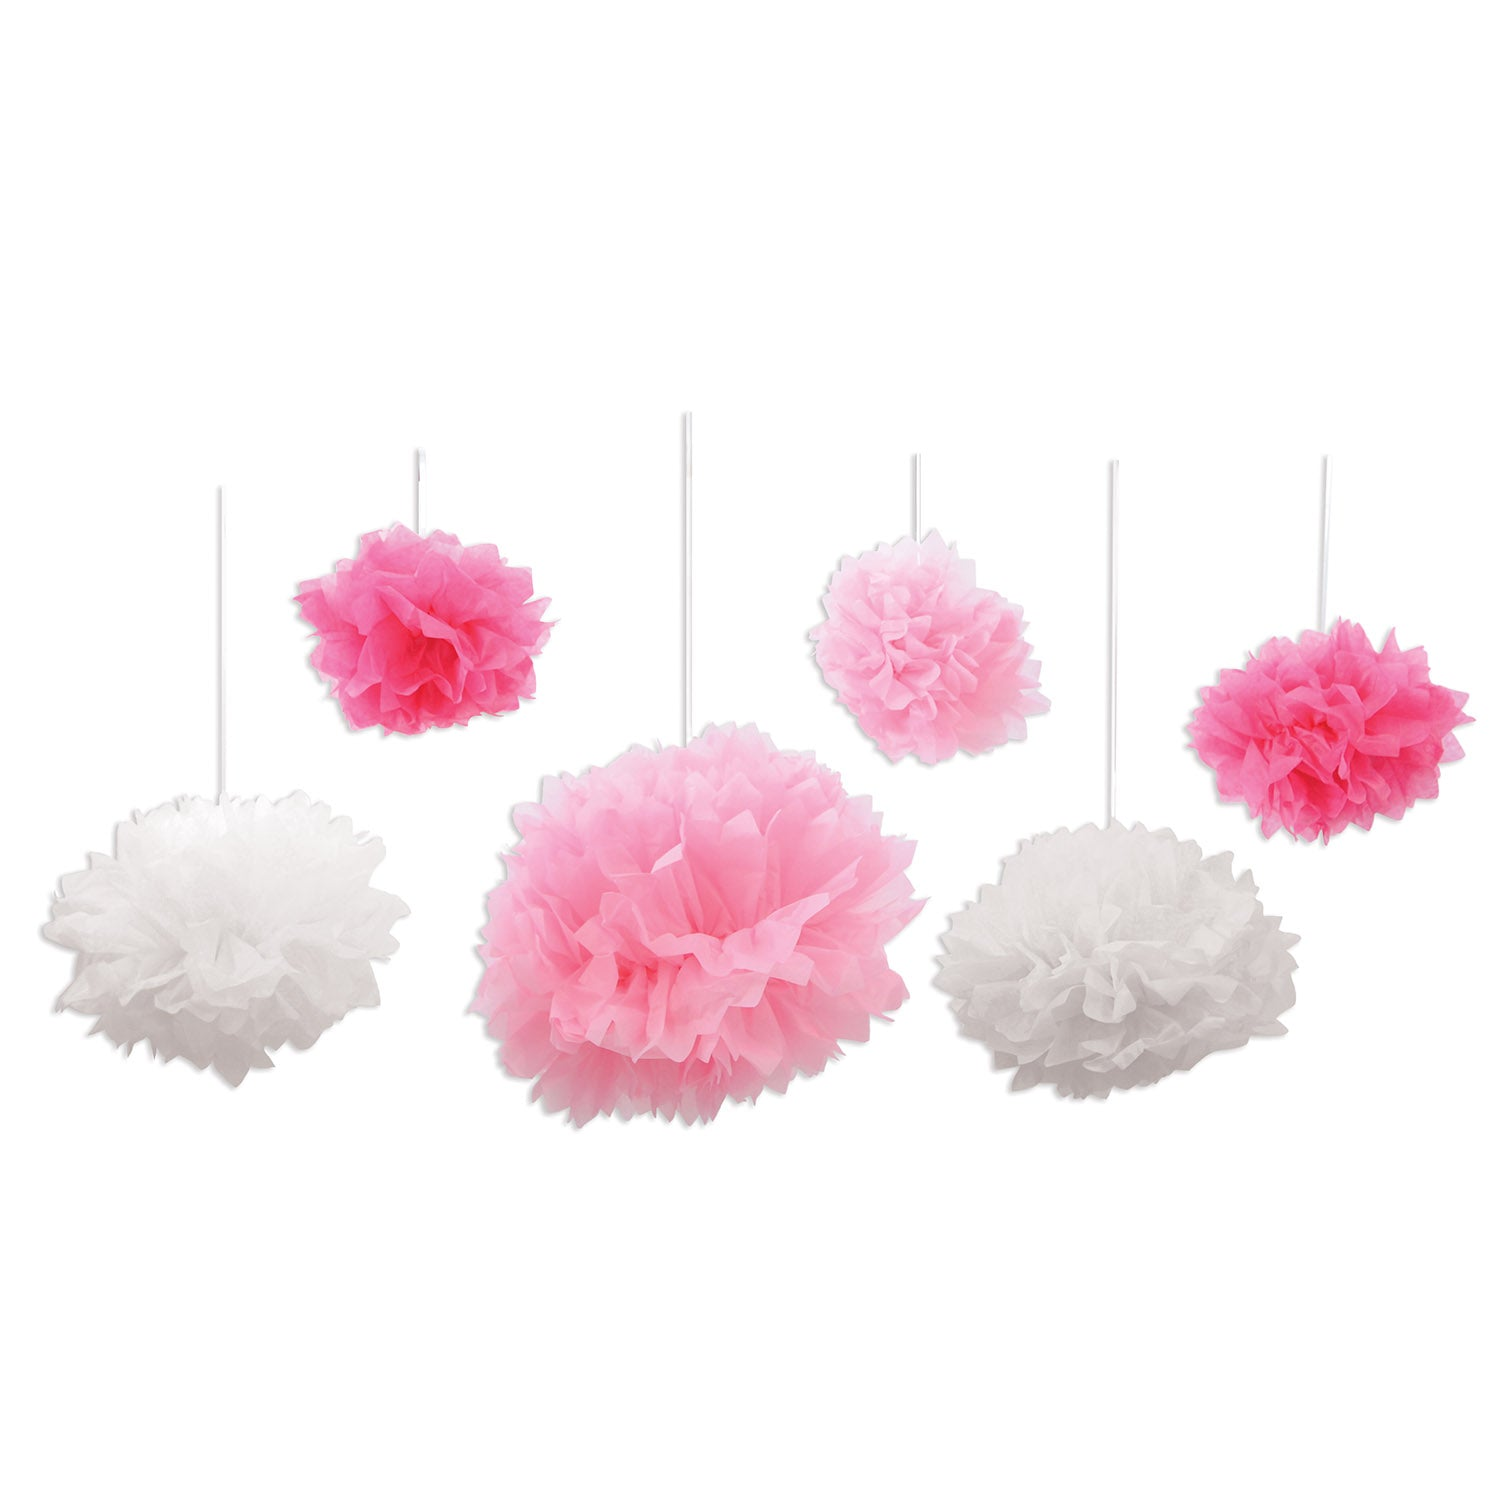 Tissue Fluff Balls (6/Pkg), pink & white by Beistle - Baby Shower Theme Decorations